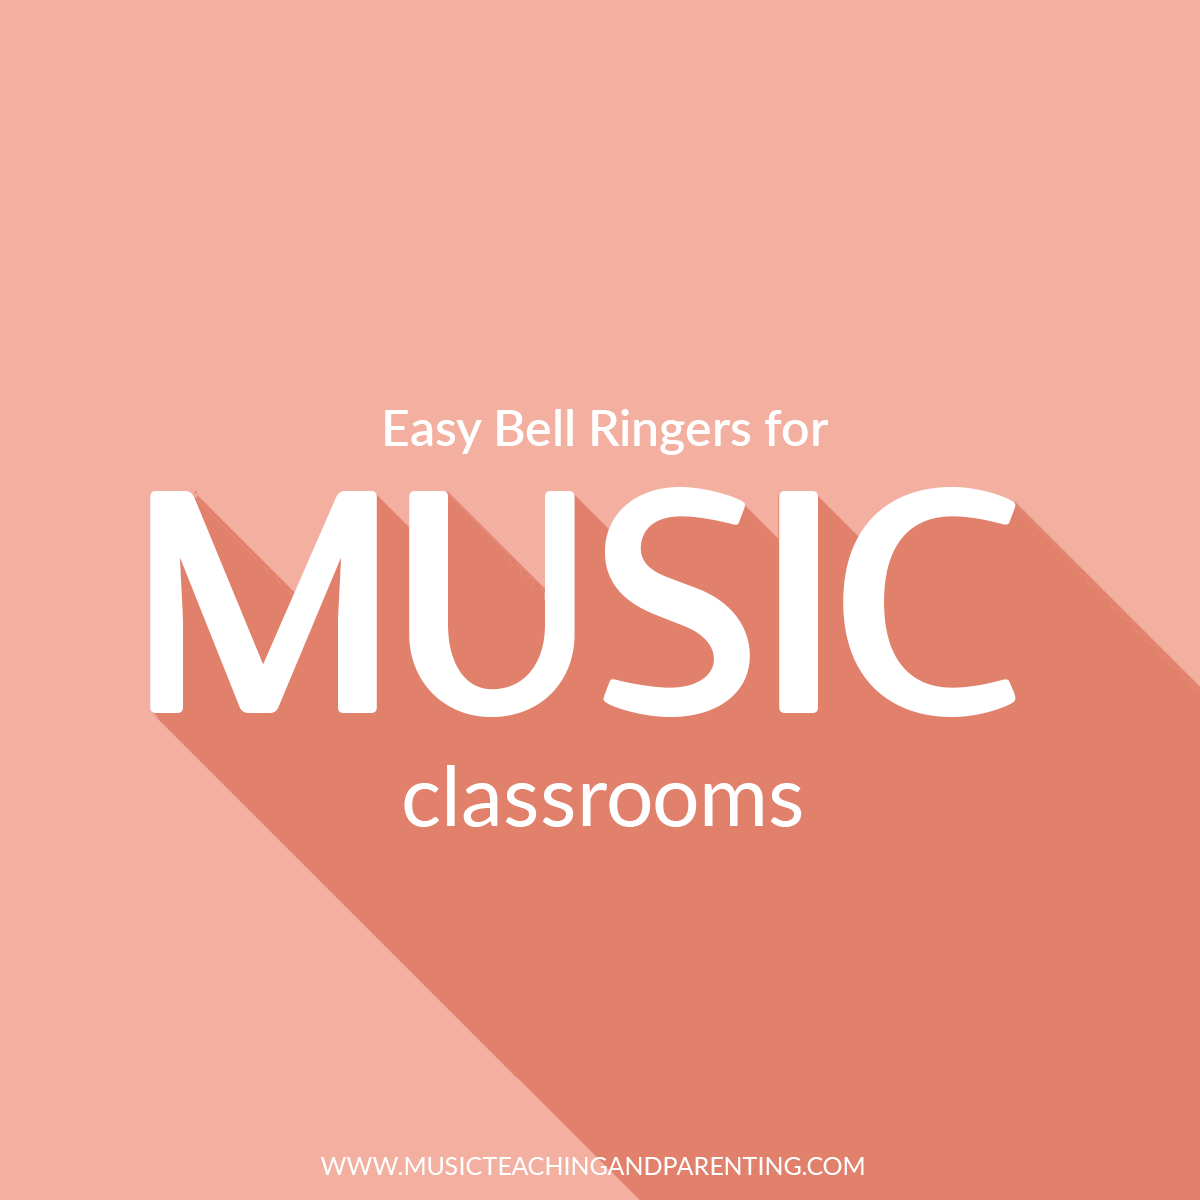 Easy Music Classroom Bell Ringers